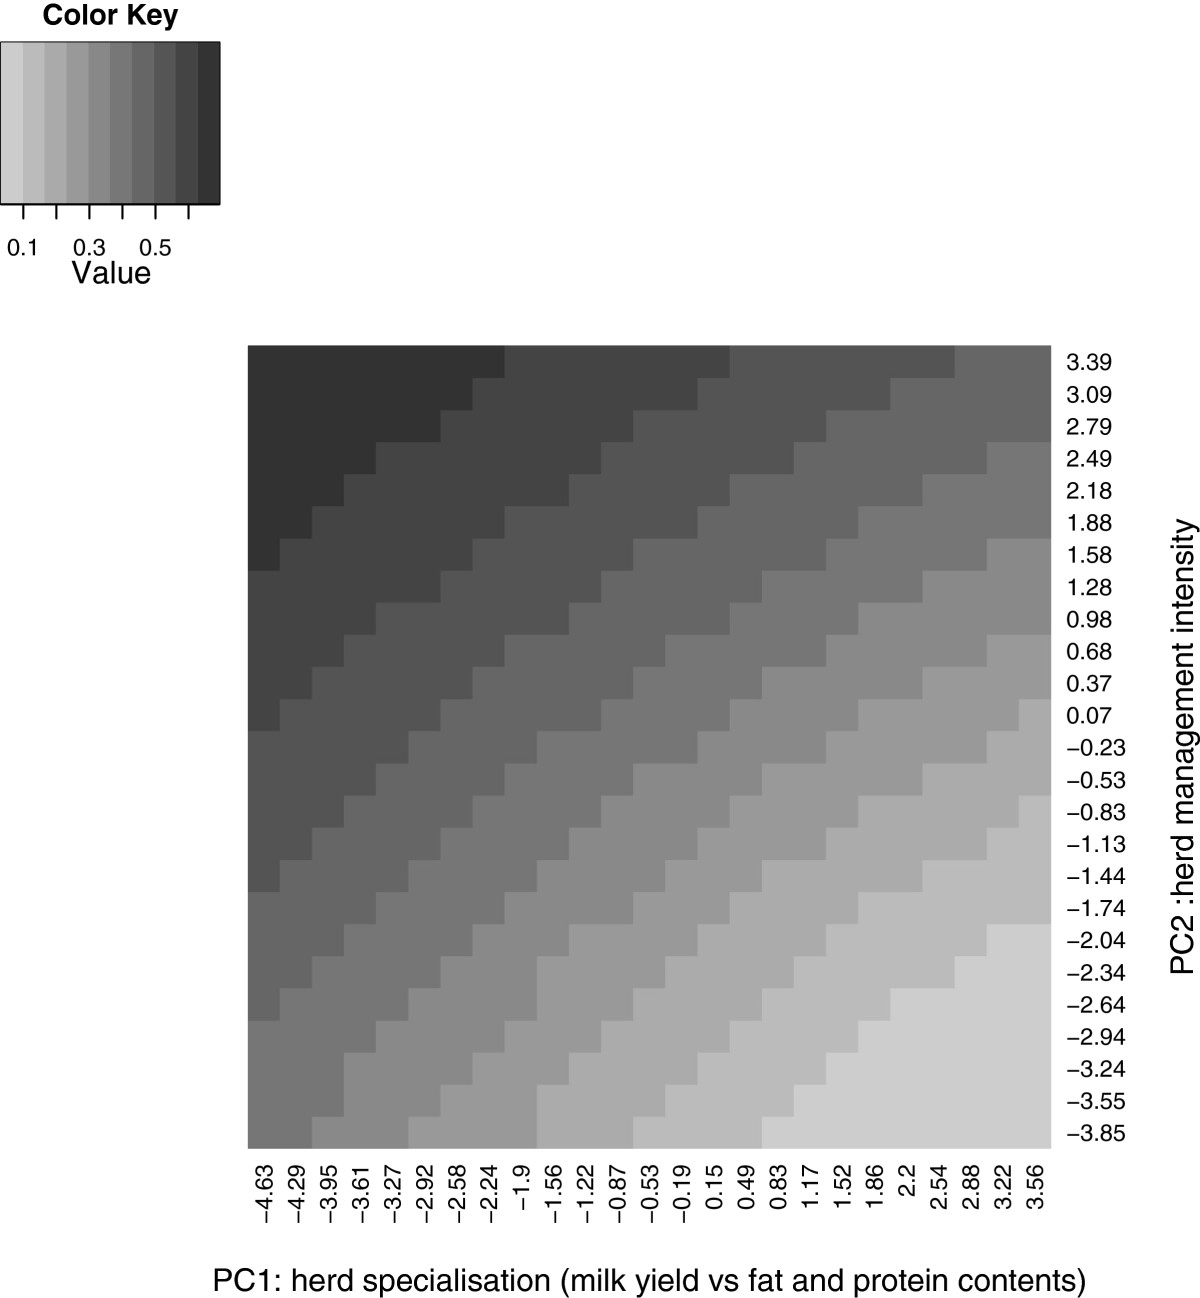 https://static-content.springer.com/image/art%3A10.1186%2F1297-9686-44-35/MediaObjects/12711_2012_Article_2553_Fig6_HTML.jpg